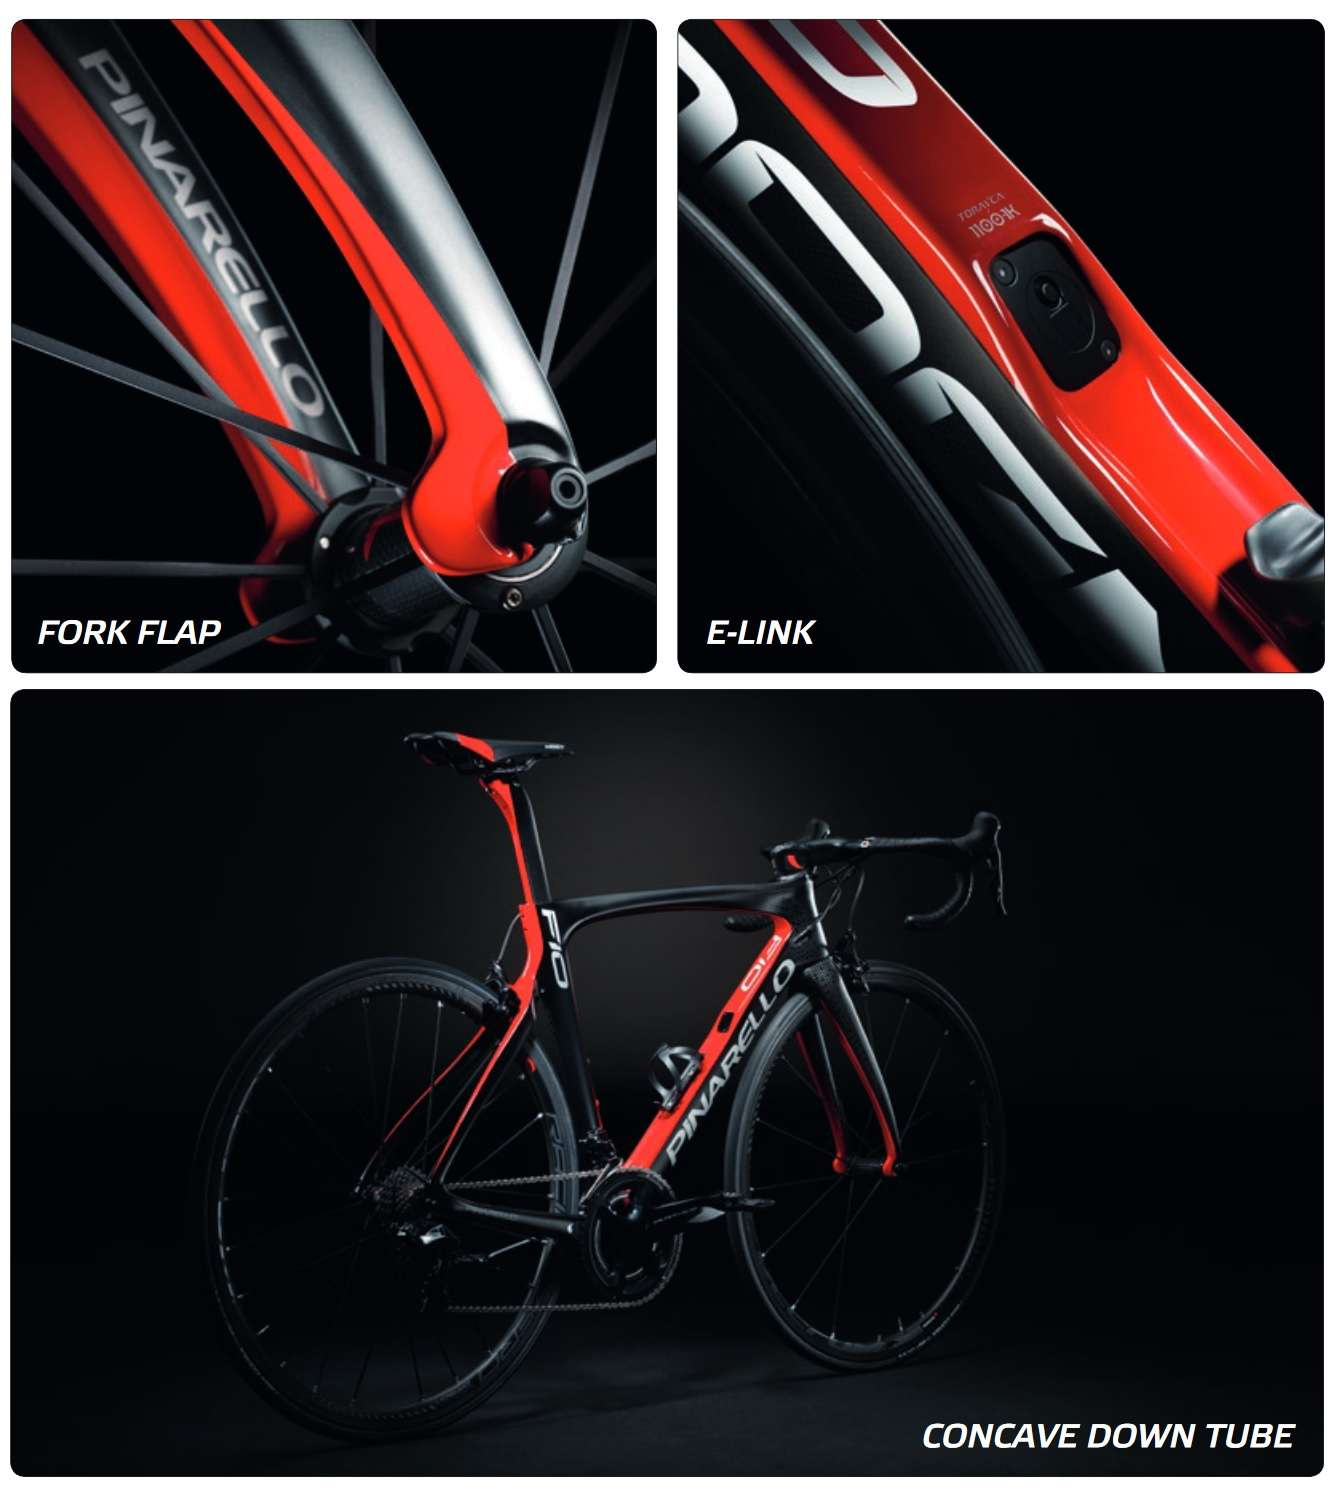 The most significant inovations in the Pinarello Dogma F10